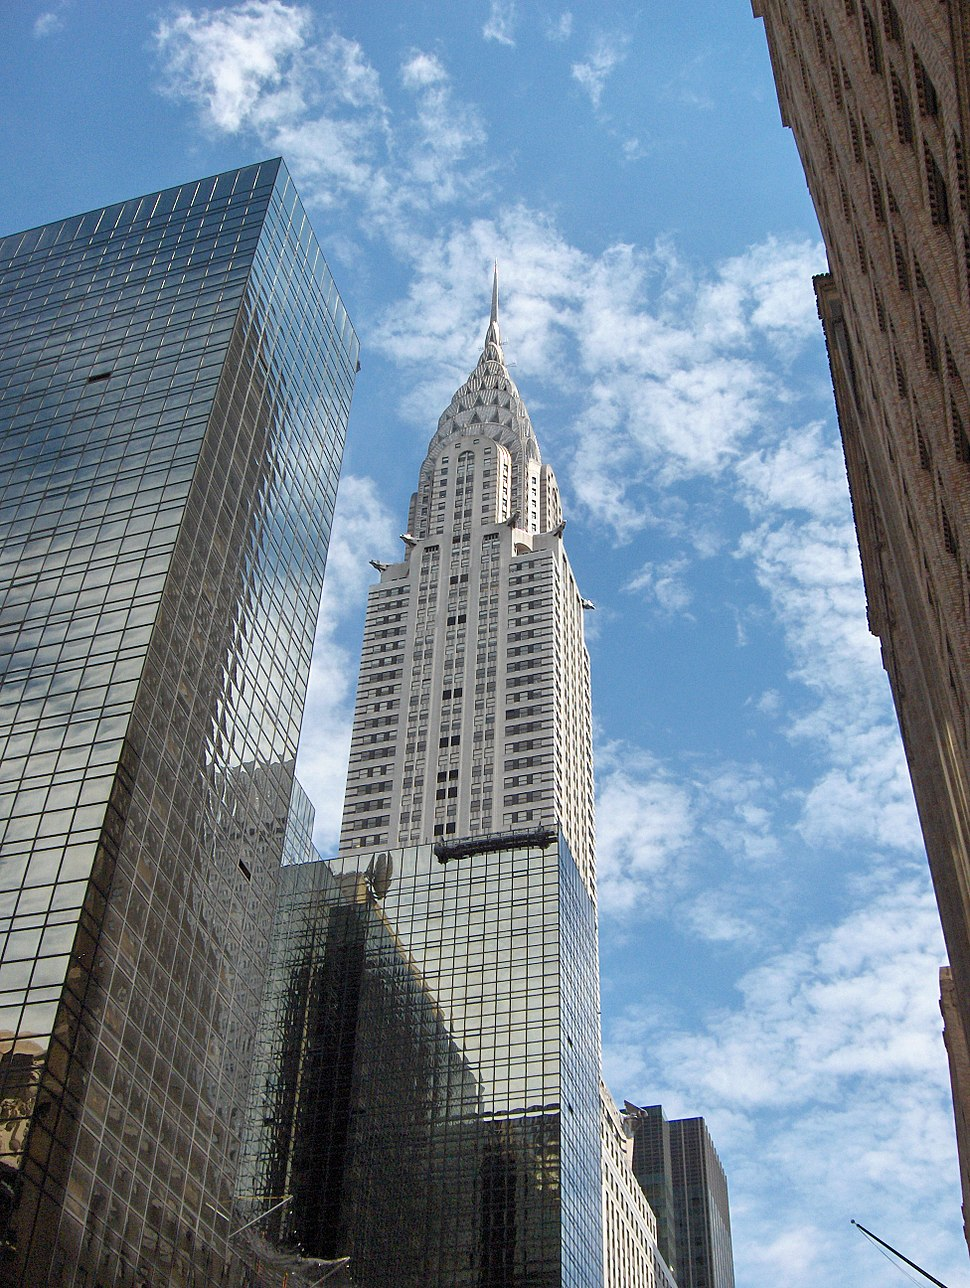 The Chrysler Building was the tallest building in the city and the world from 1930–1931.